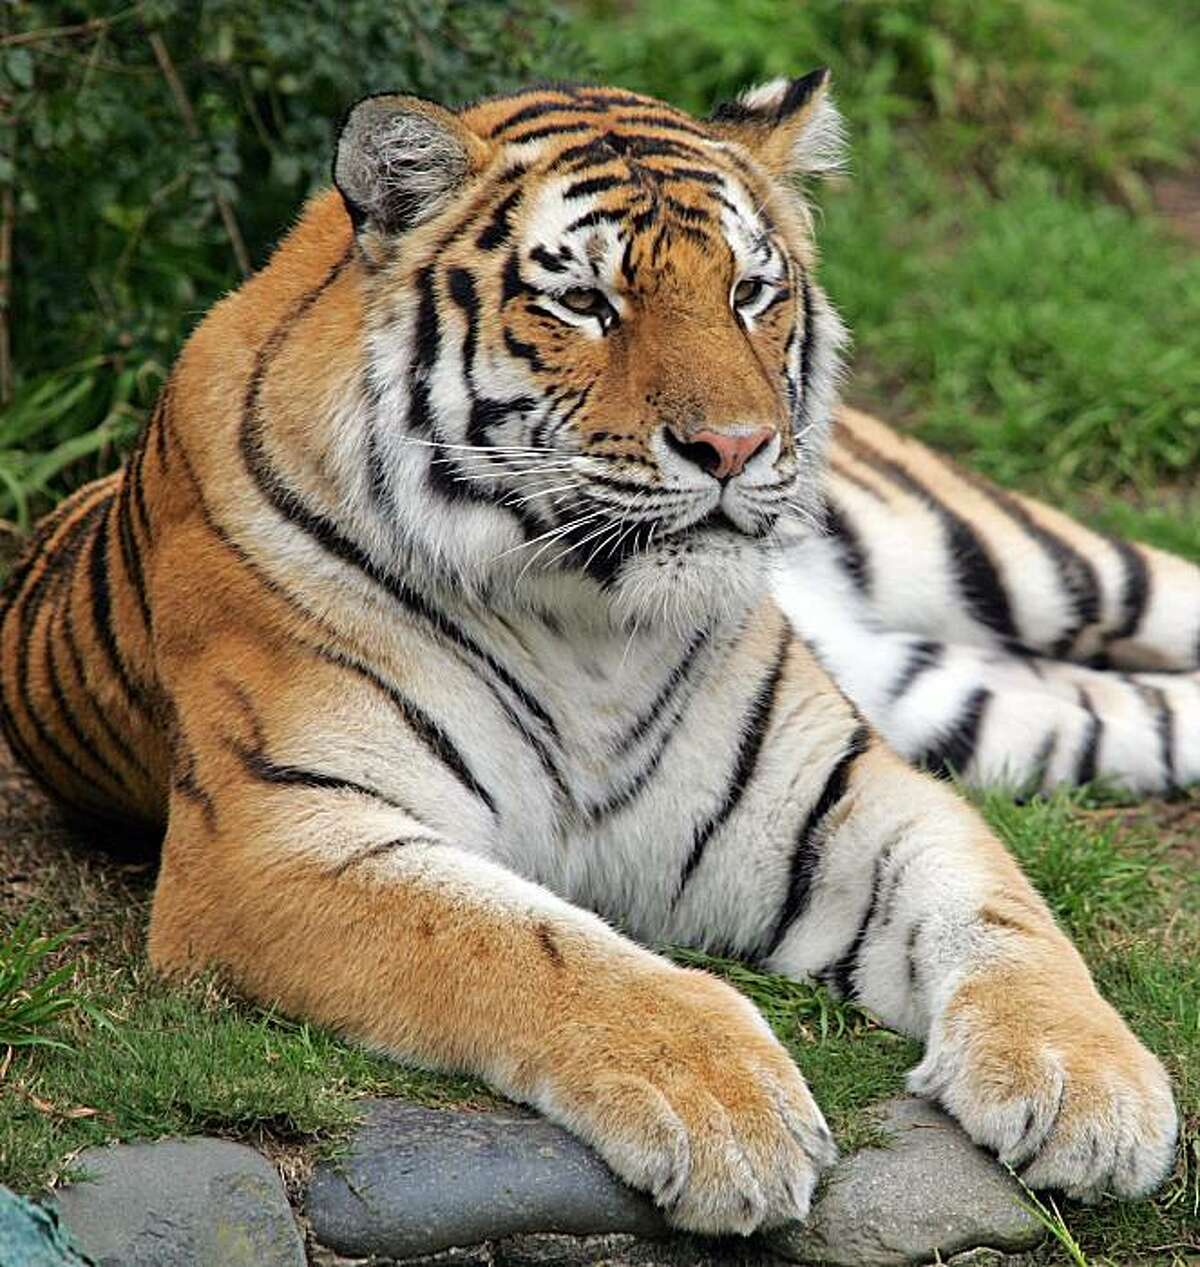 * FILE ** This undated file photo provided by the San Francisco Zoo shows Tatiana, a female Siberian tiger. Tatiana, the tiger that mauled a zookeeper last year escaped from its pen at the San Francisco Zoo on Tuesday Dec. 25, 2007, killing one man and injuring two others before police shot it dead, authorities said. (AP Photo/San Francisco Zoo, File)